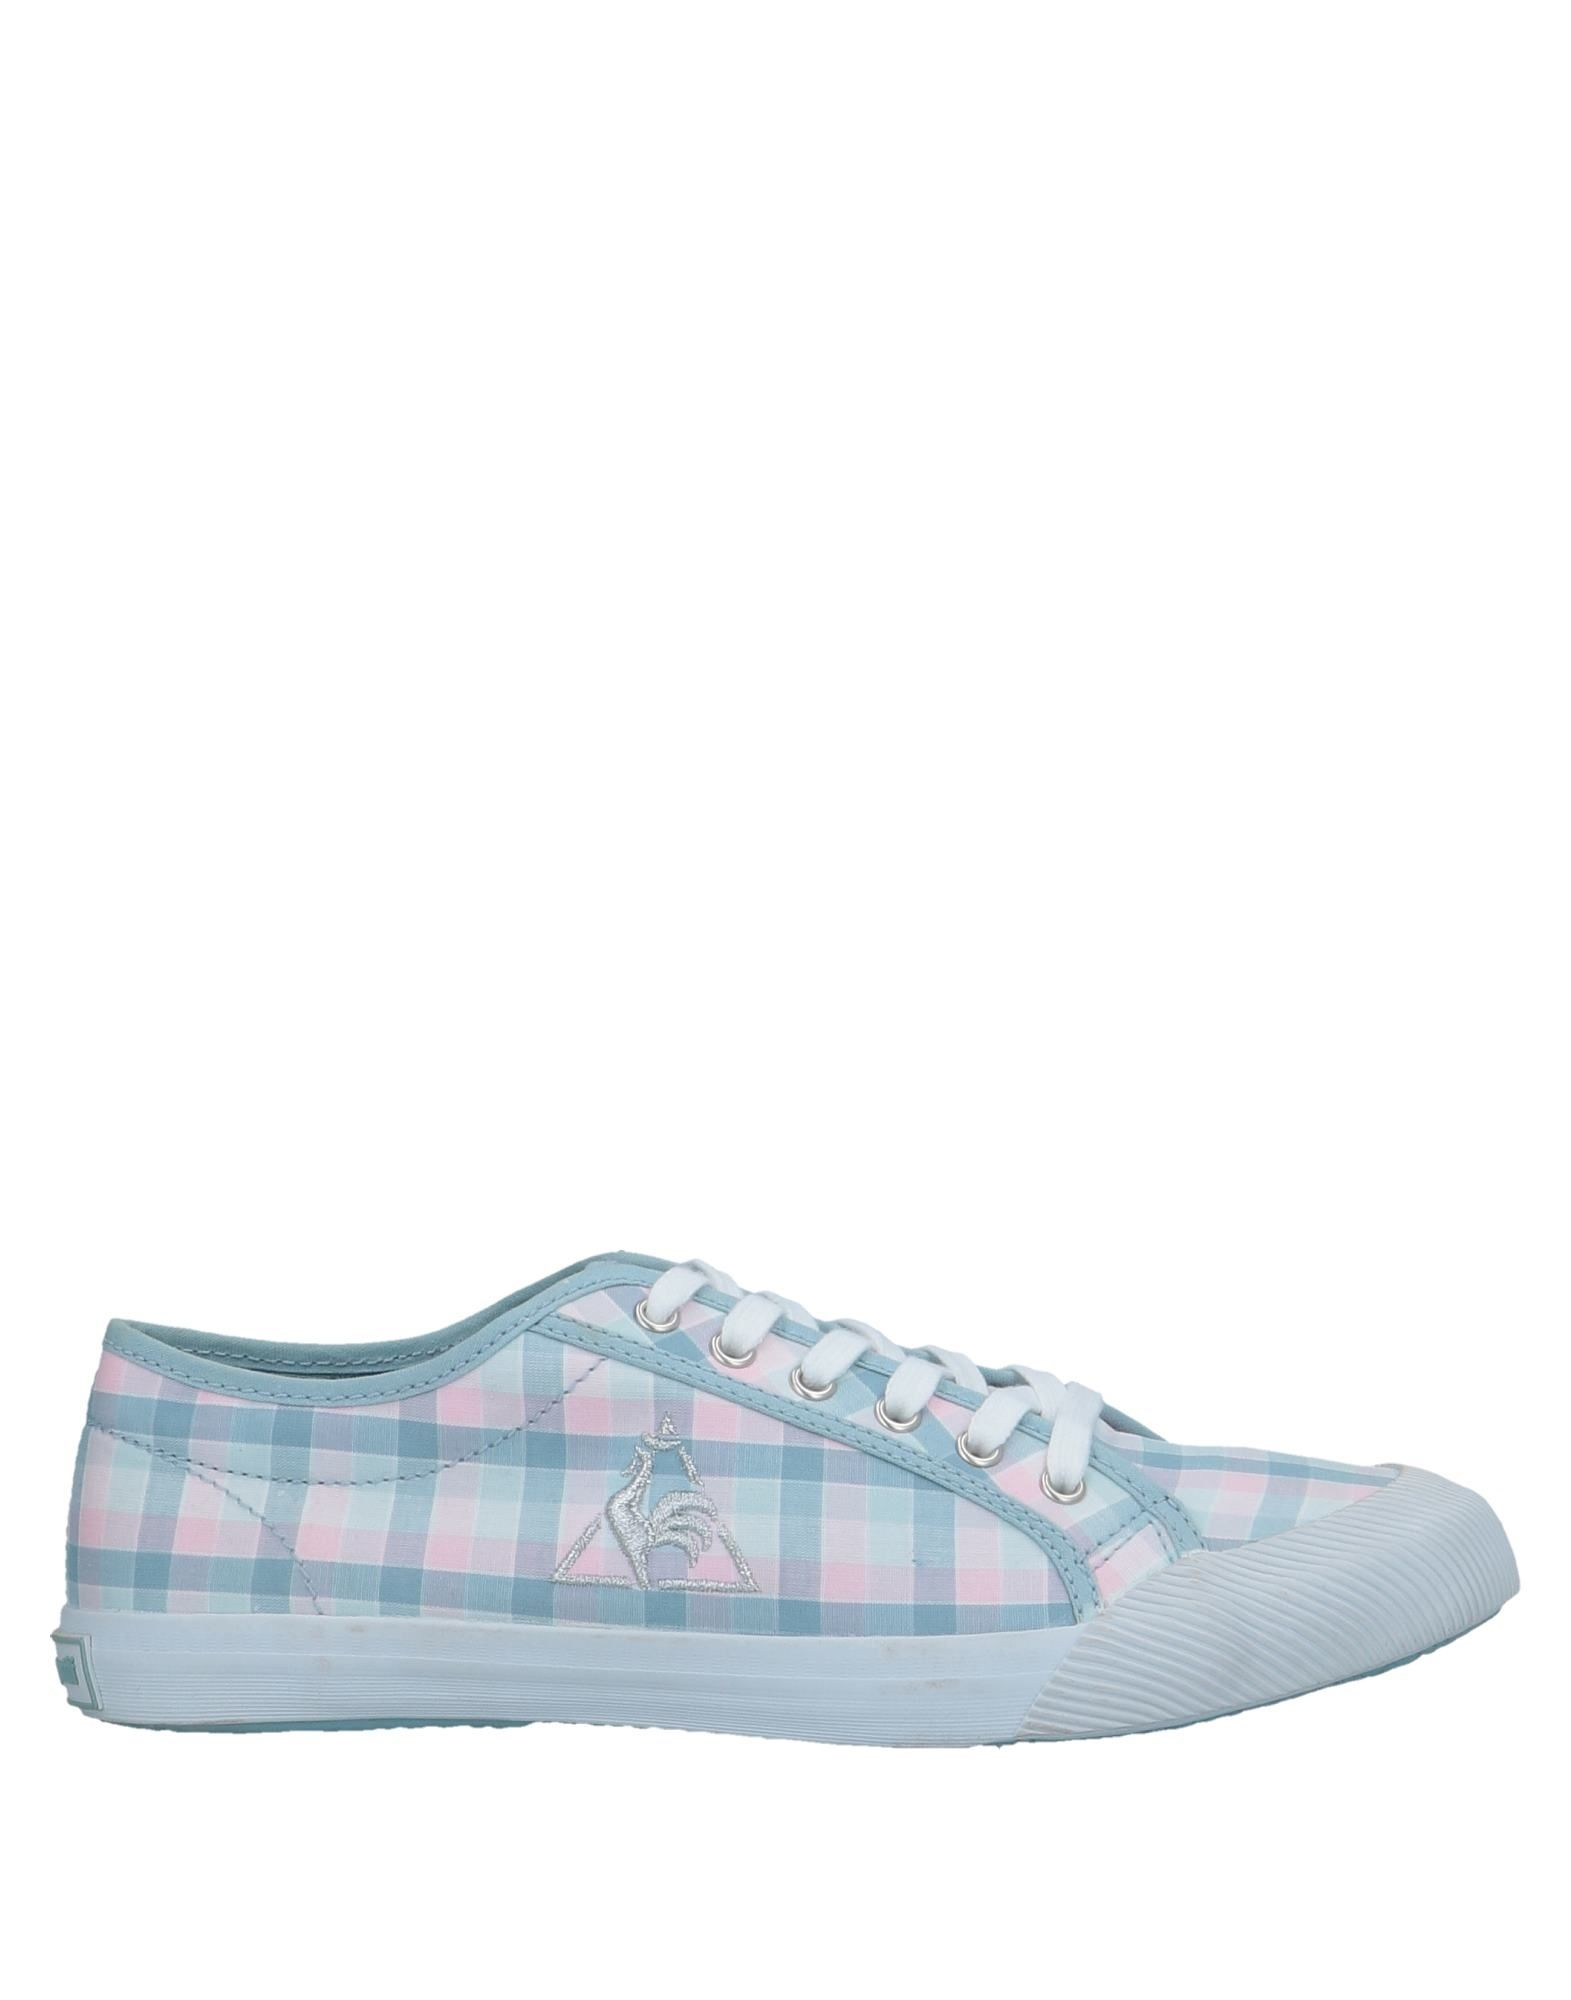 Sneakers Le Coq Sportif Donna - 11536922UC